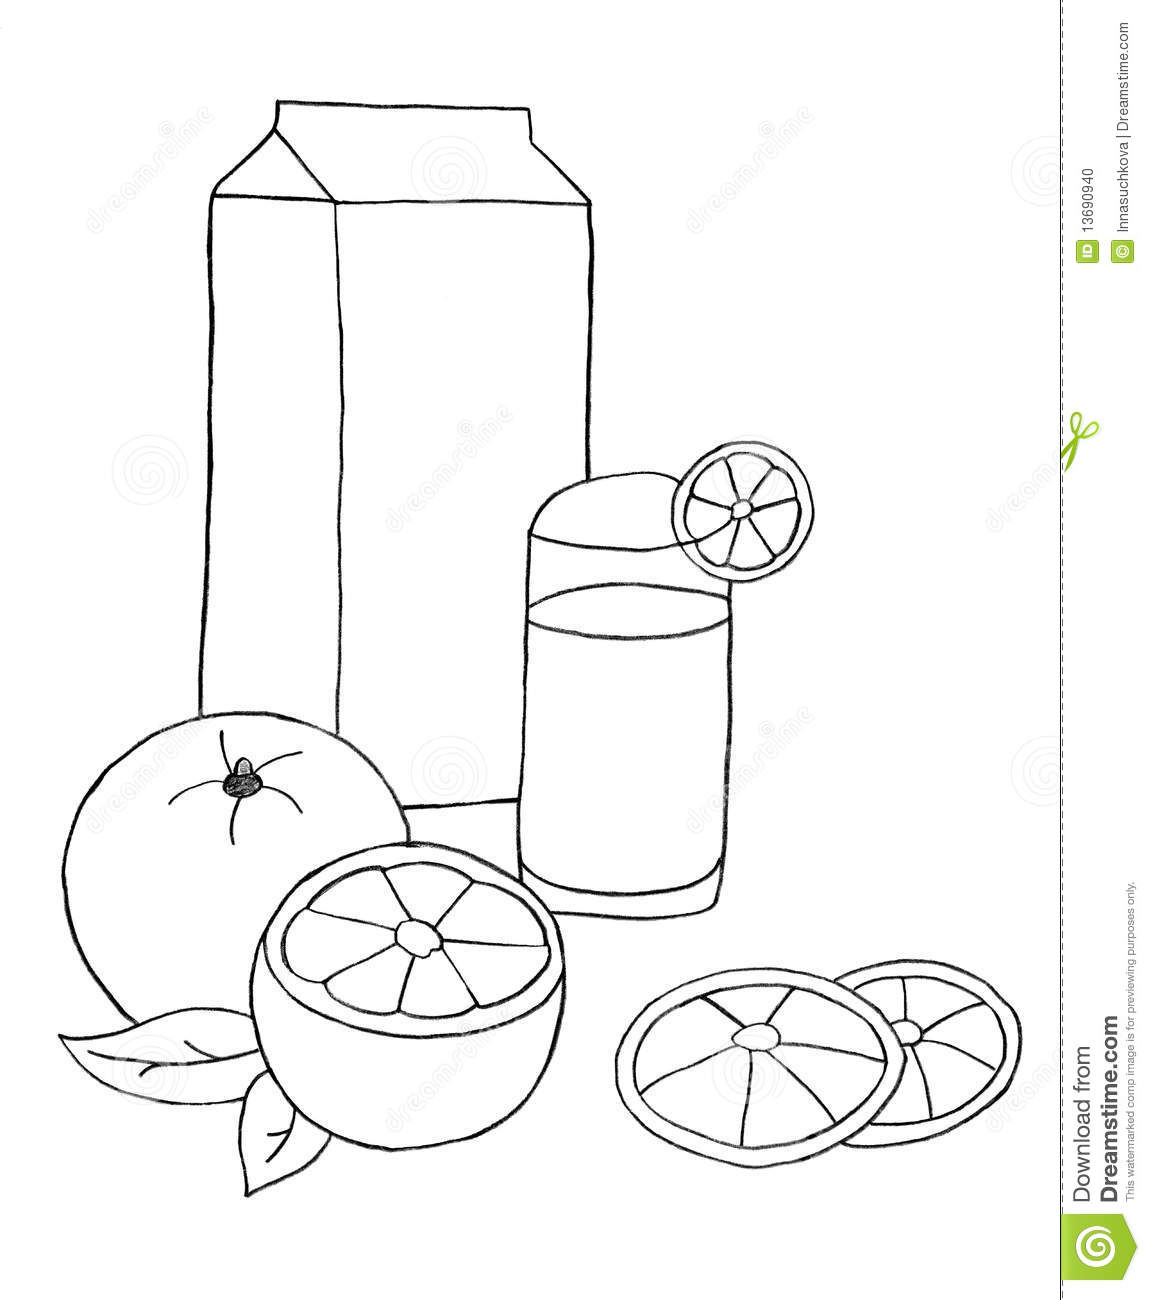 Royalty Free Stock Photo Science Icons Symbols Set Isolated White Background Image38875045 also Smart Meters in addition Stock Illustration Lightning Thunder Indoor Safety Tips Clipart Set Human Pictogram Representing There Stay Away Windows Don Image56473037 moreover 102312 Free Fruit Doodles Vectors moreover Phyto Color. on natural resources cartoon